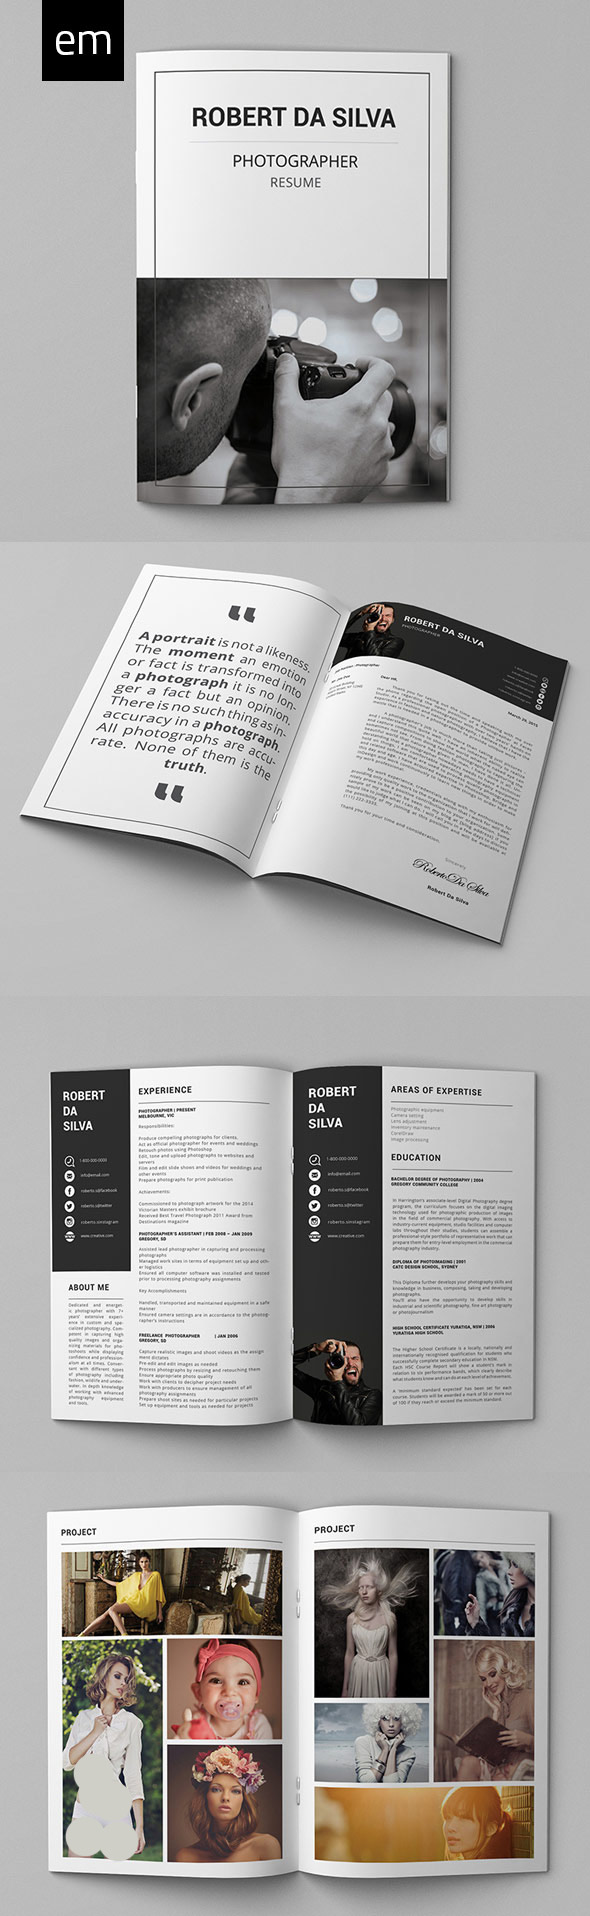 26 Creative CV Resume Templates with Cover Letter Portfolio Page